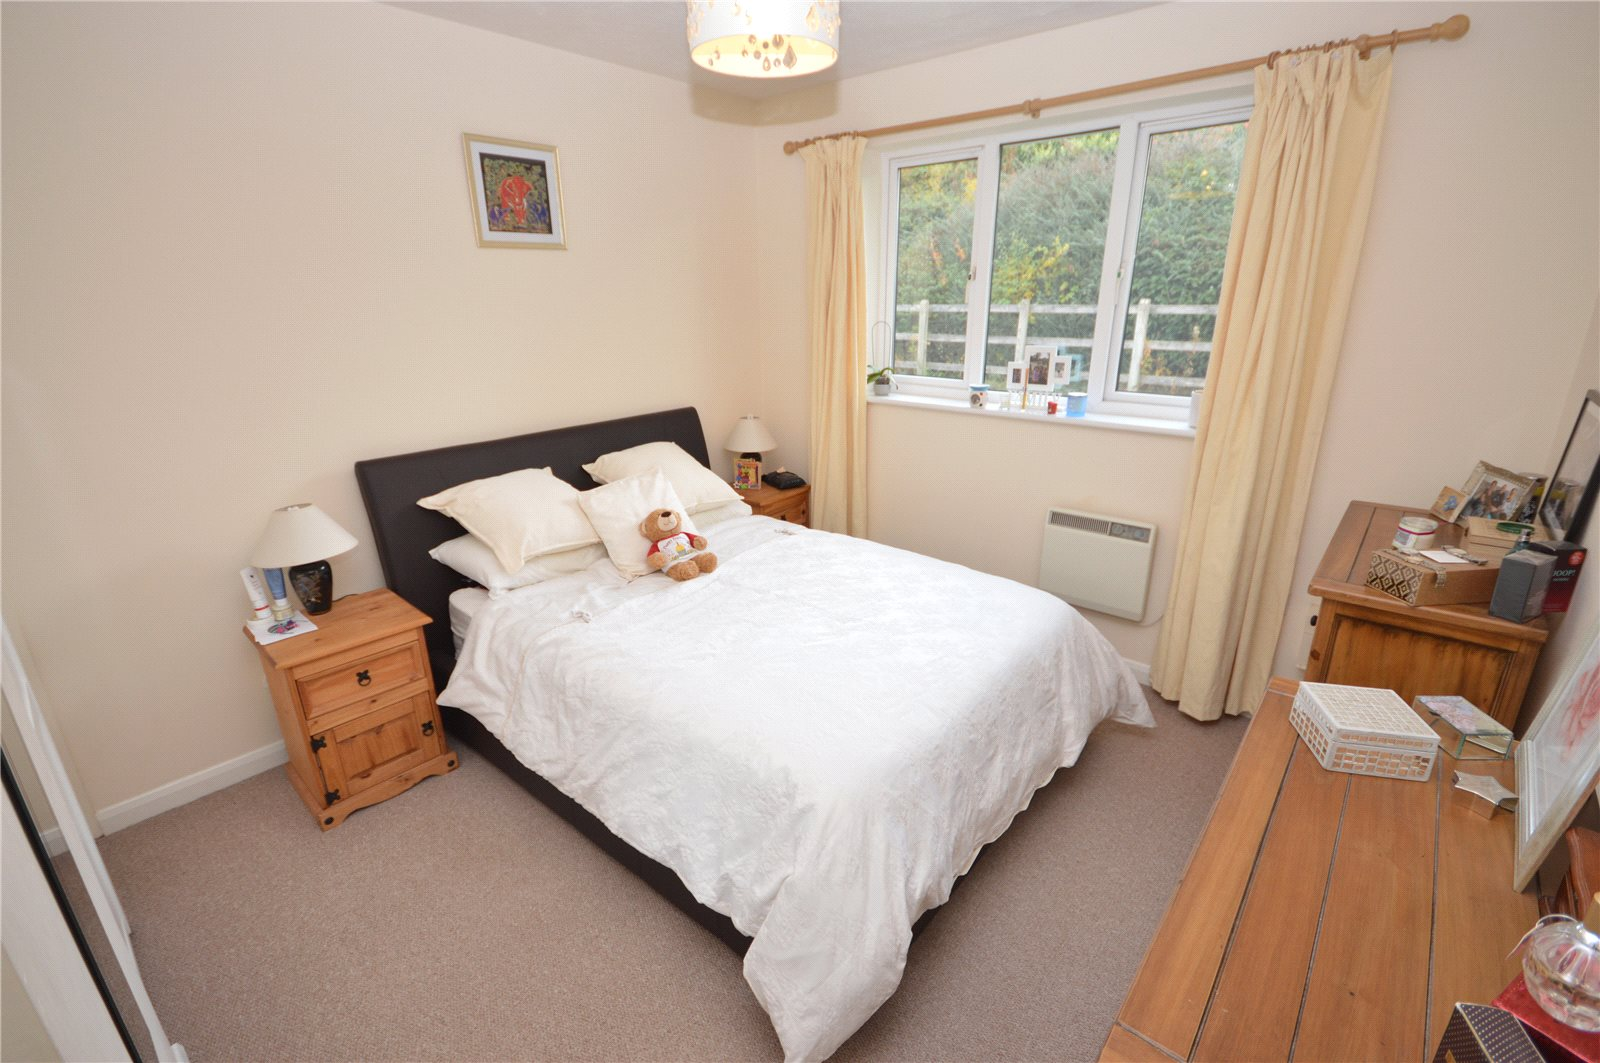 property for sale in Guiseley interior bedroom